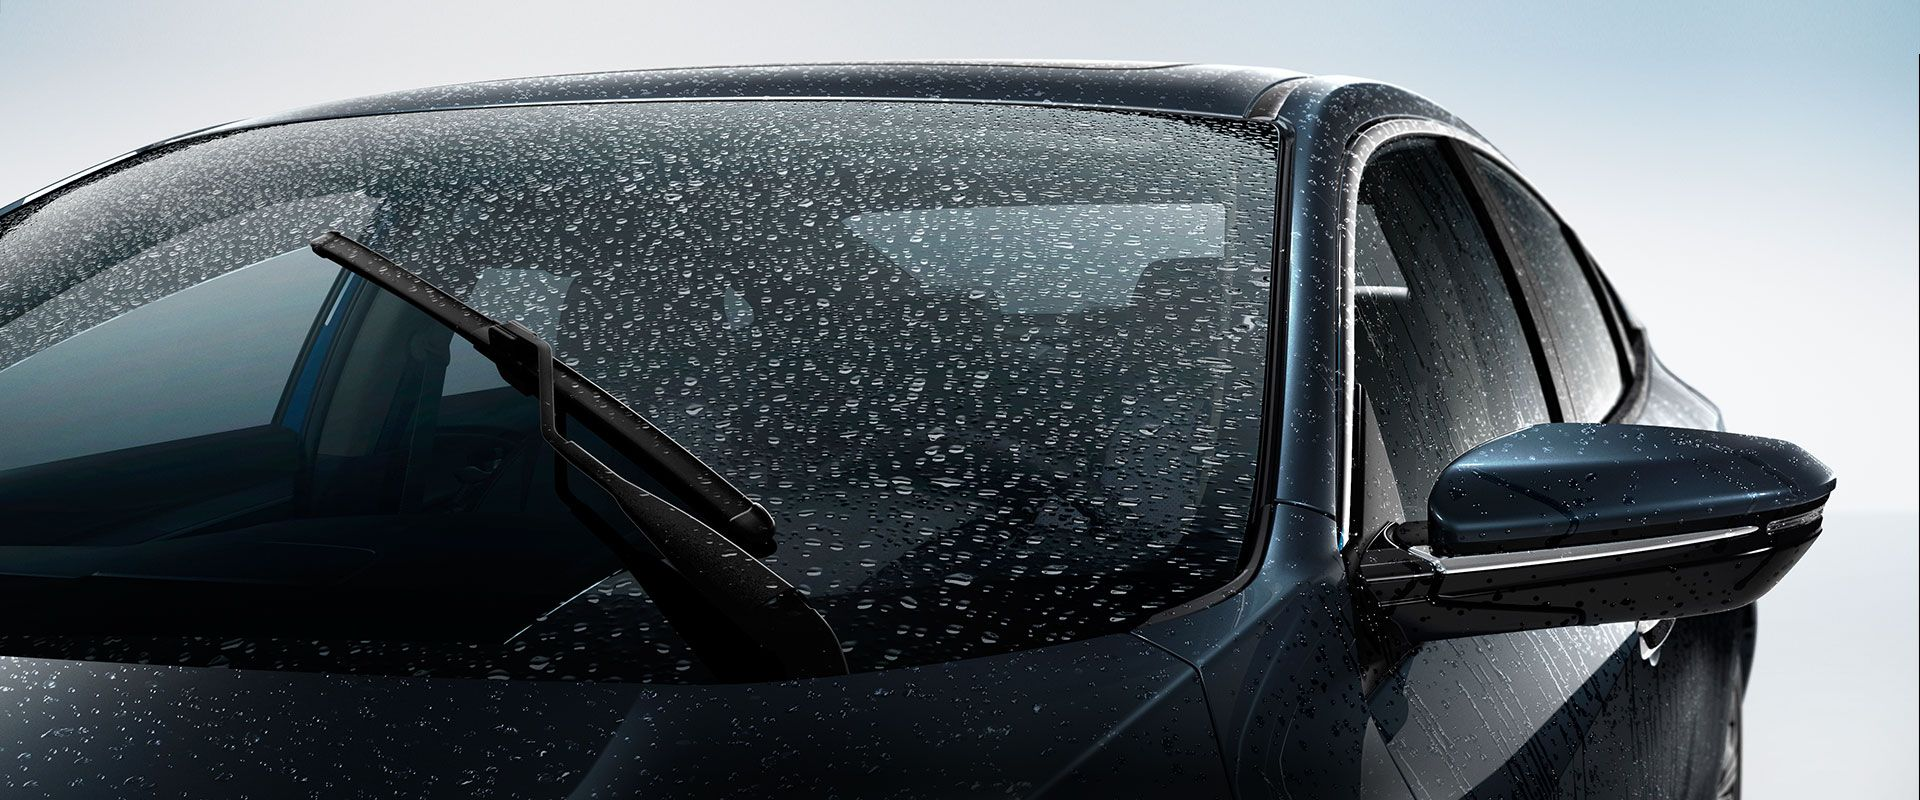 On A Wet And Gloomy Day Like Today You Turn Your Wipers On Then Off Then On Not Anymore Honda Offers Rain Sensing Wipers Set It Car Auto Glass Car Wiper